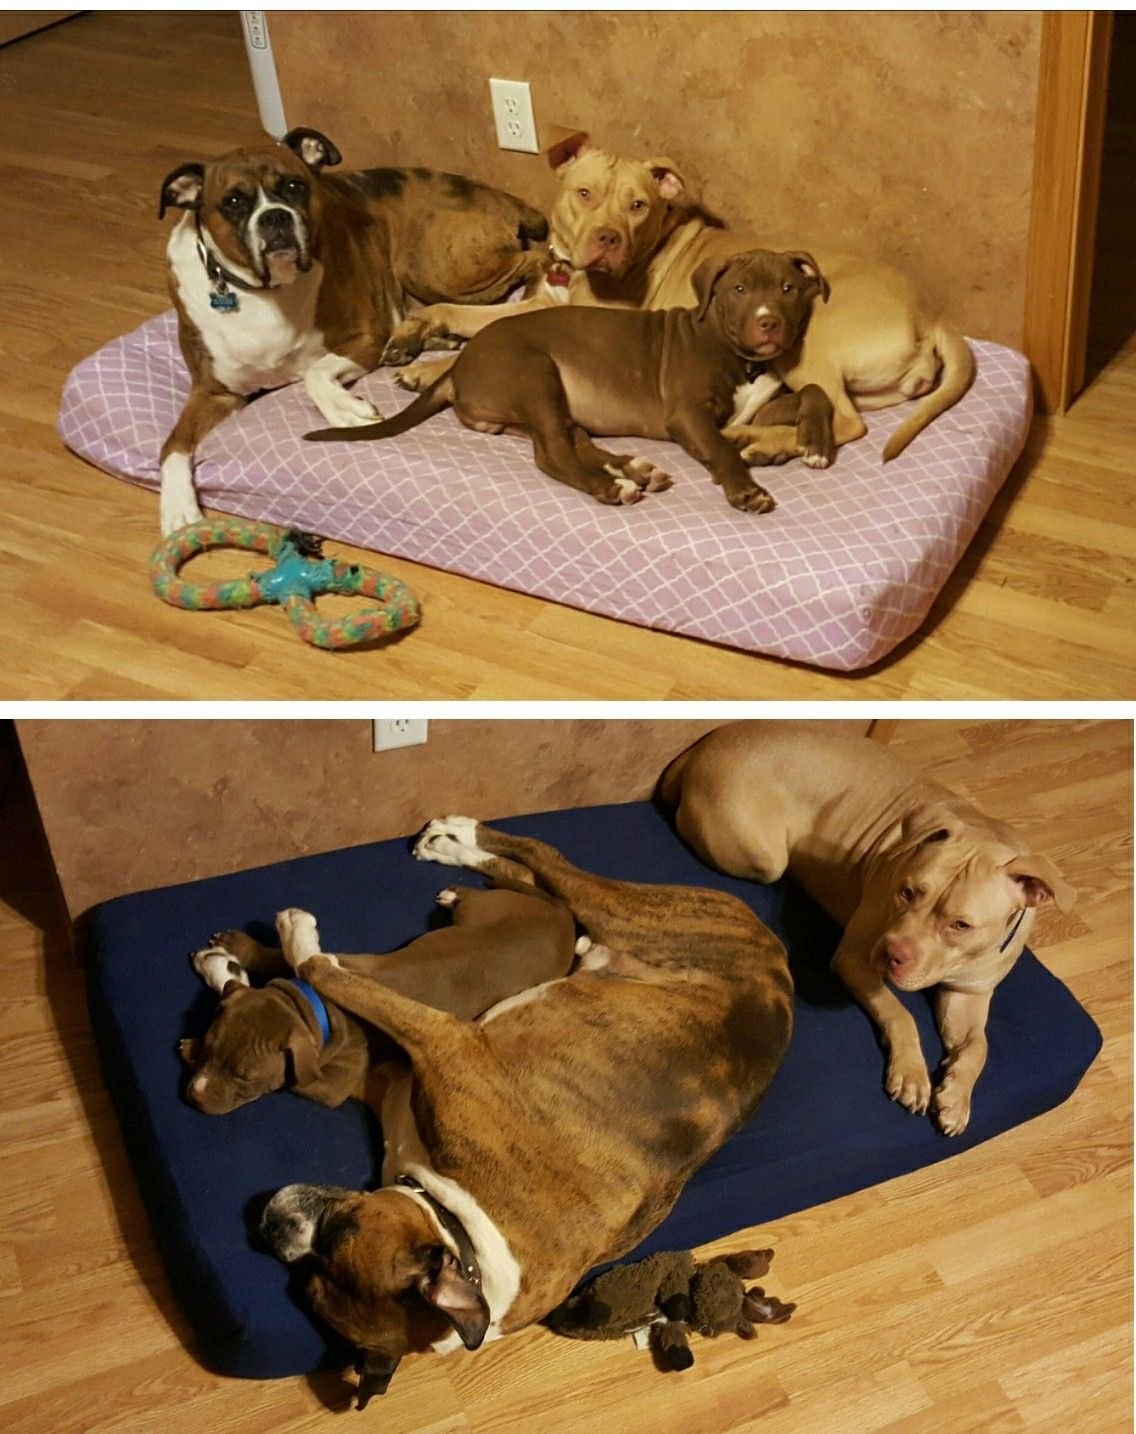 Use baby crib mattresses instead of regular dog beds. They